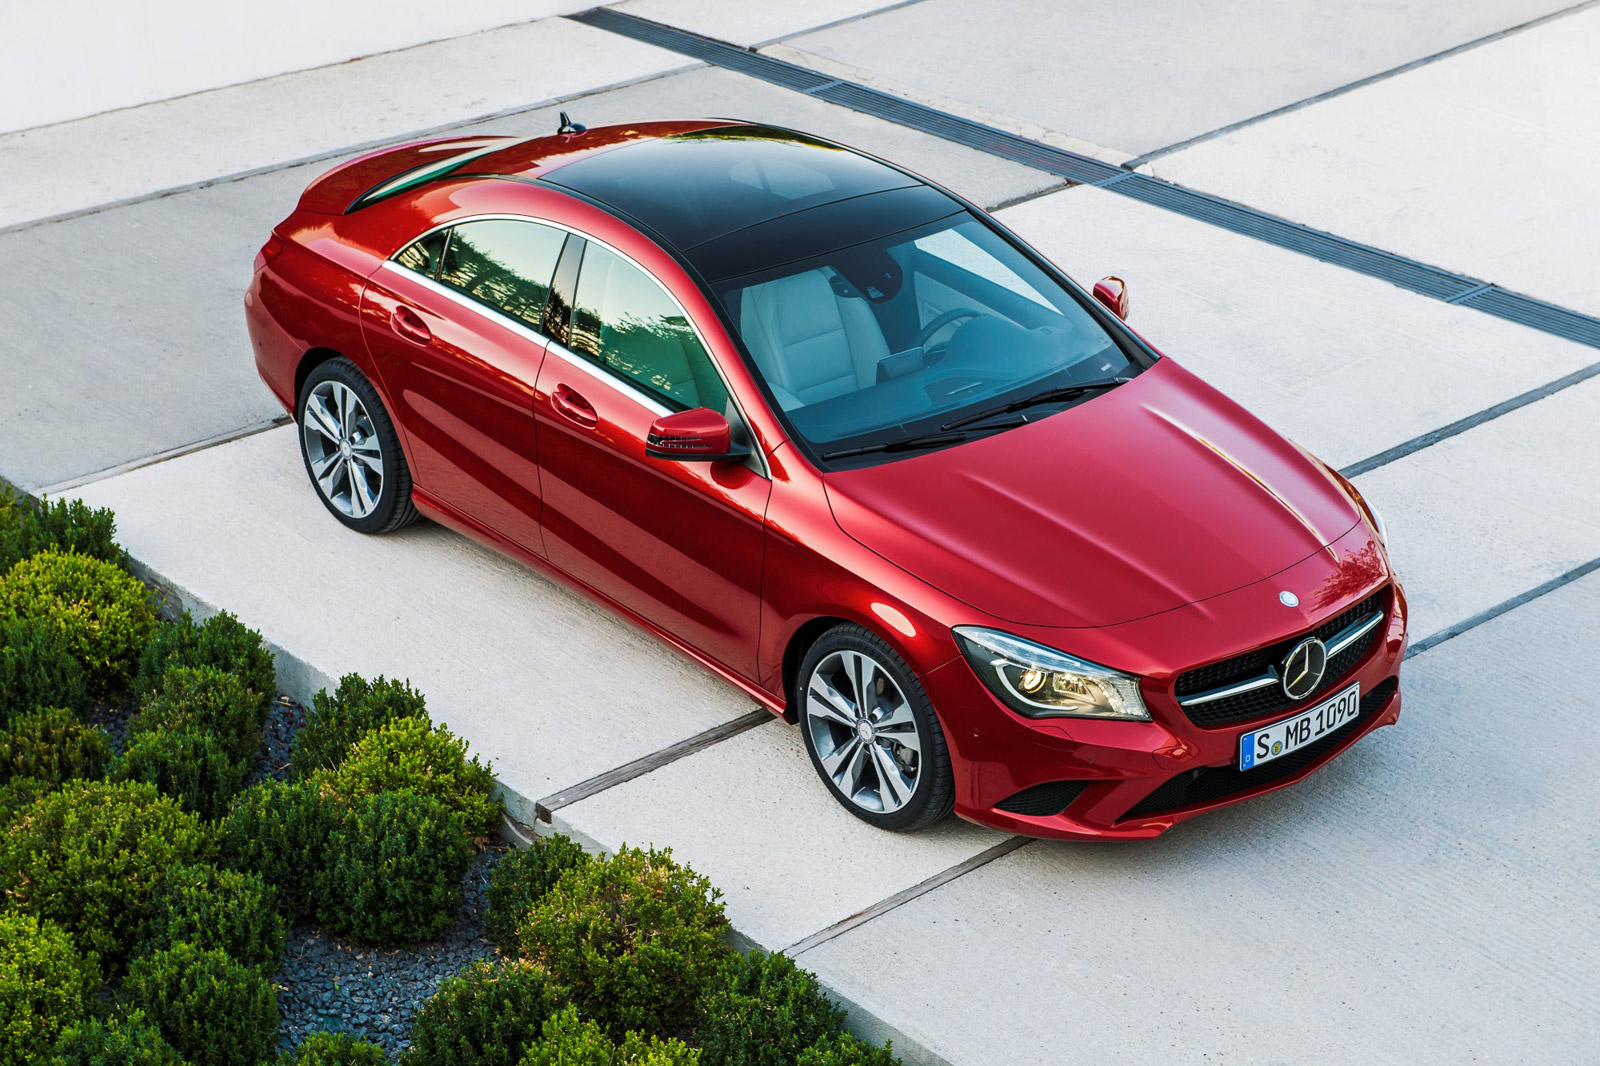 Mercedes edges out bmw for 2013 u s luxury car sales crown for Crown mercedes benz